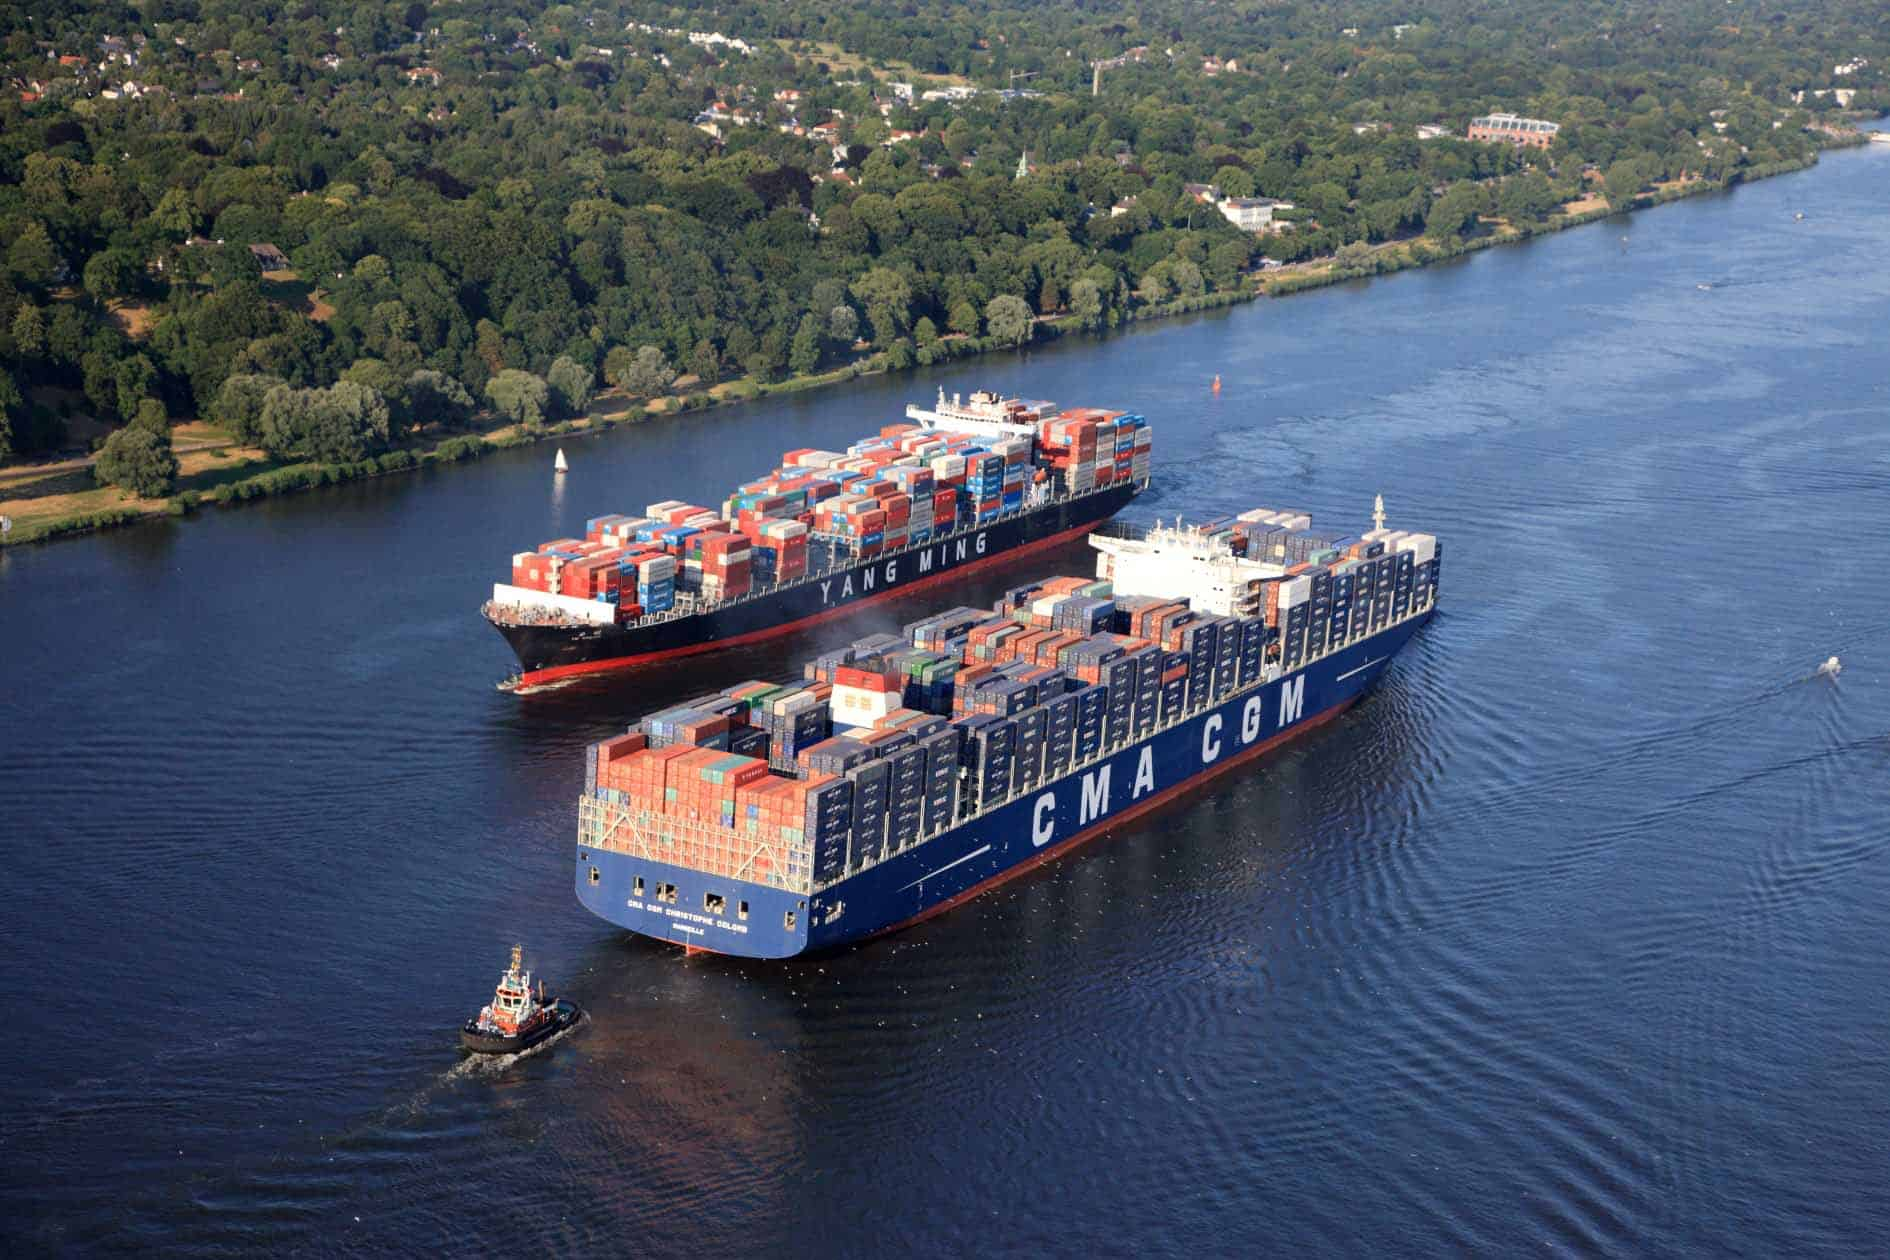 Elbe dredging decision expected in October